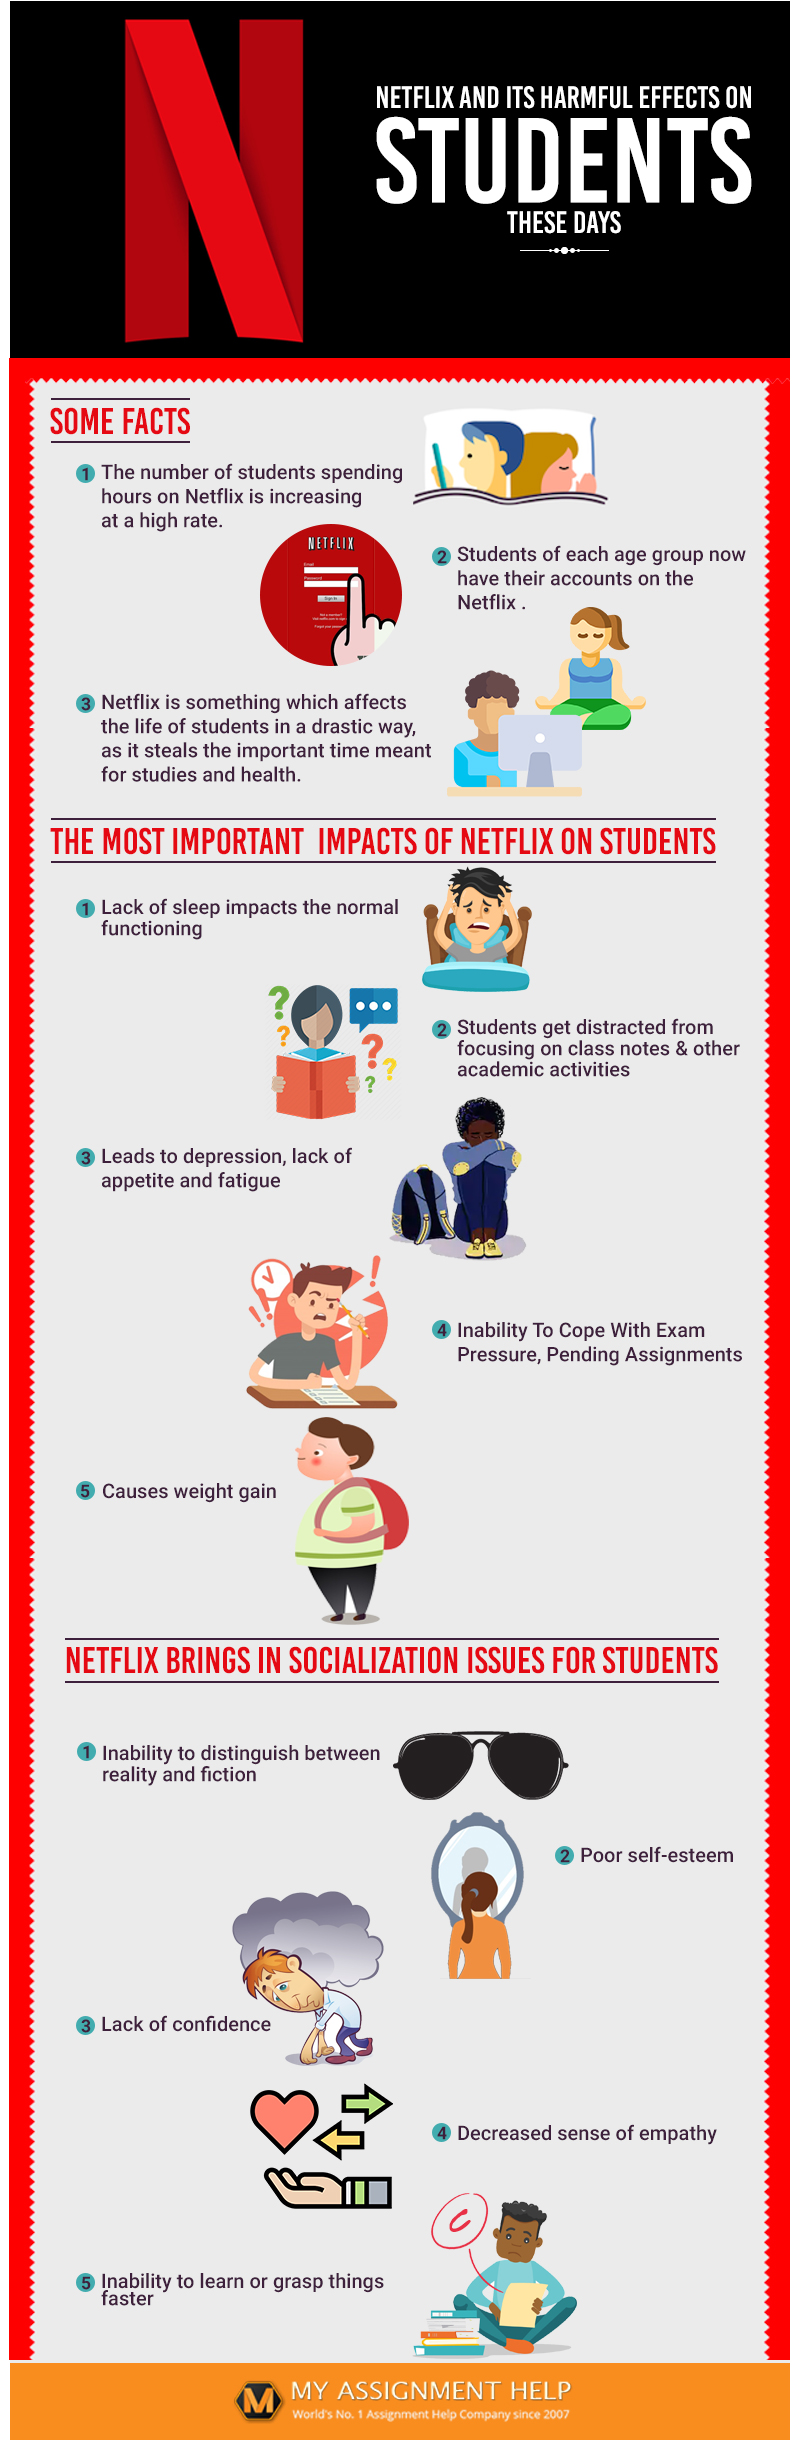 Netflix and Its Harmful Effects On Students These Days infographics2 - The Effects of Netflix on Students Nowadays